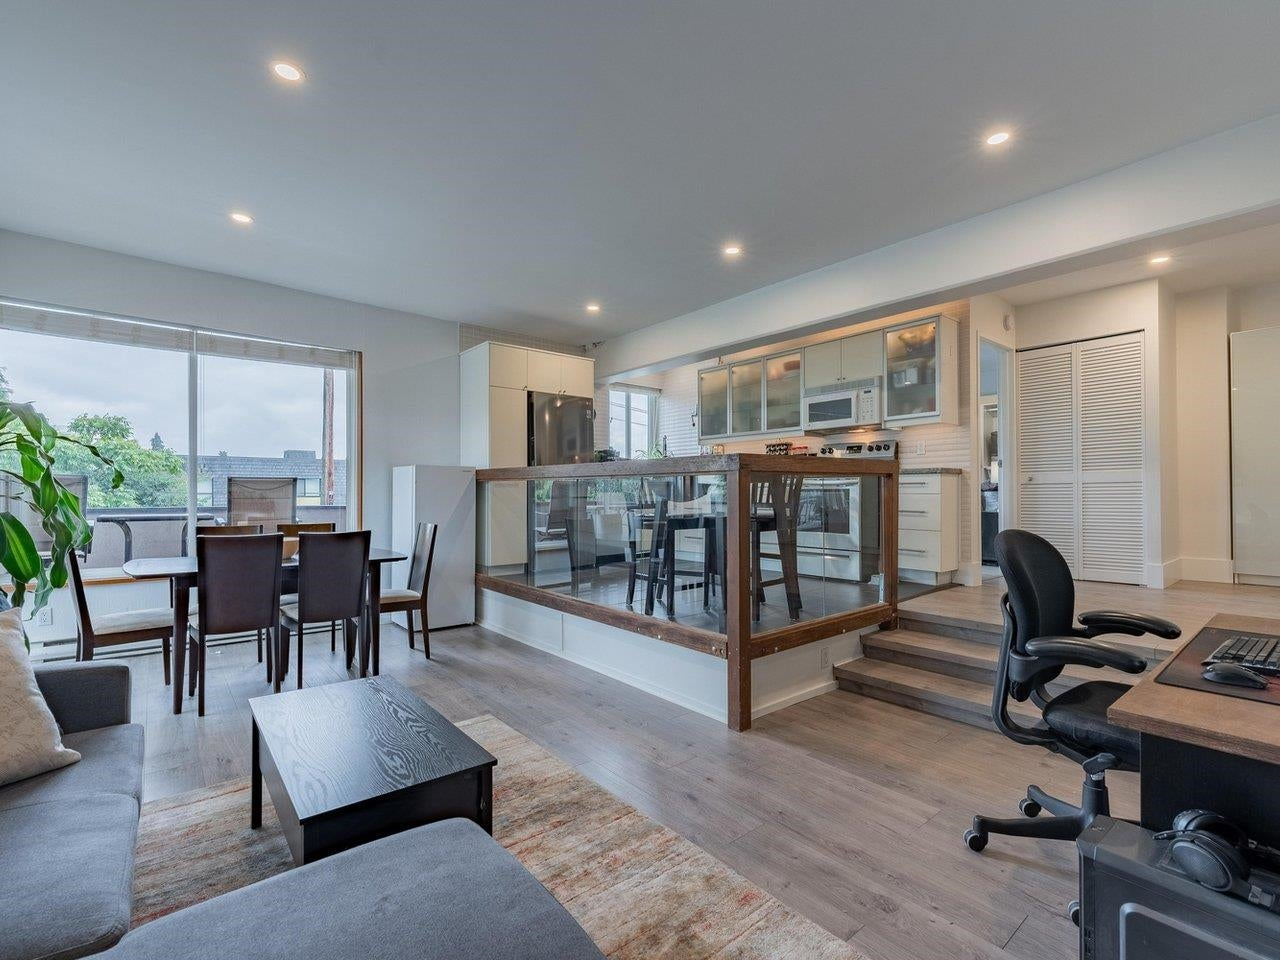 306 341 MAHON AVENUE - Lower Lonsdale Apartment/Condo for sale, 1 Bedroom (R2627199) - #1